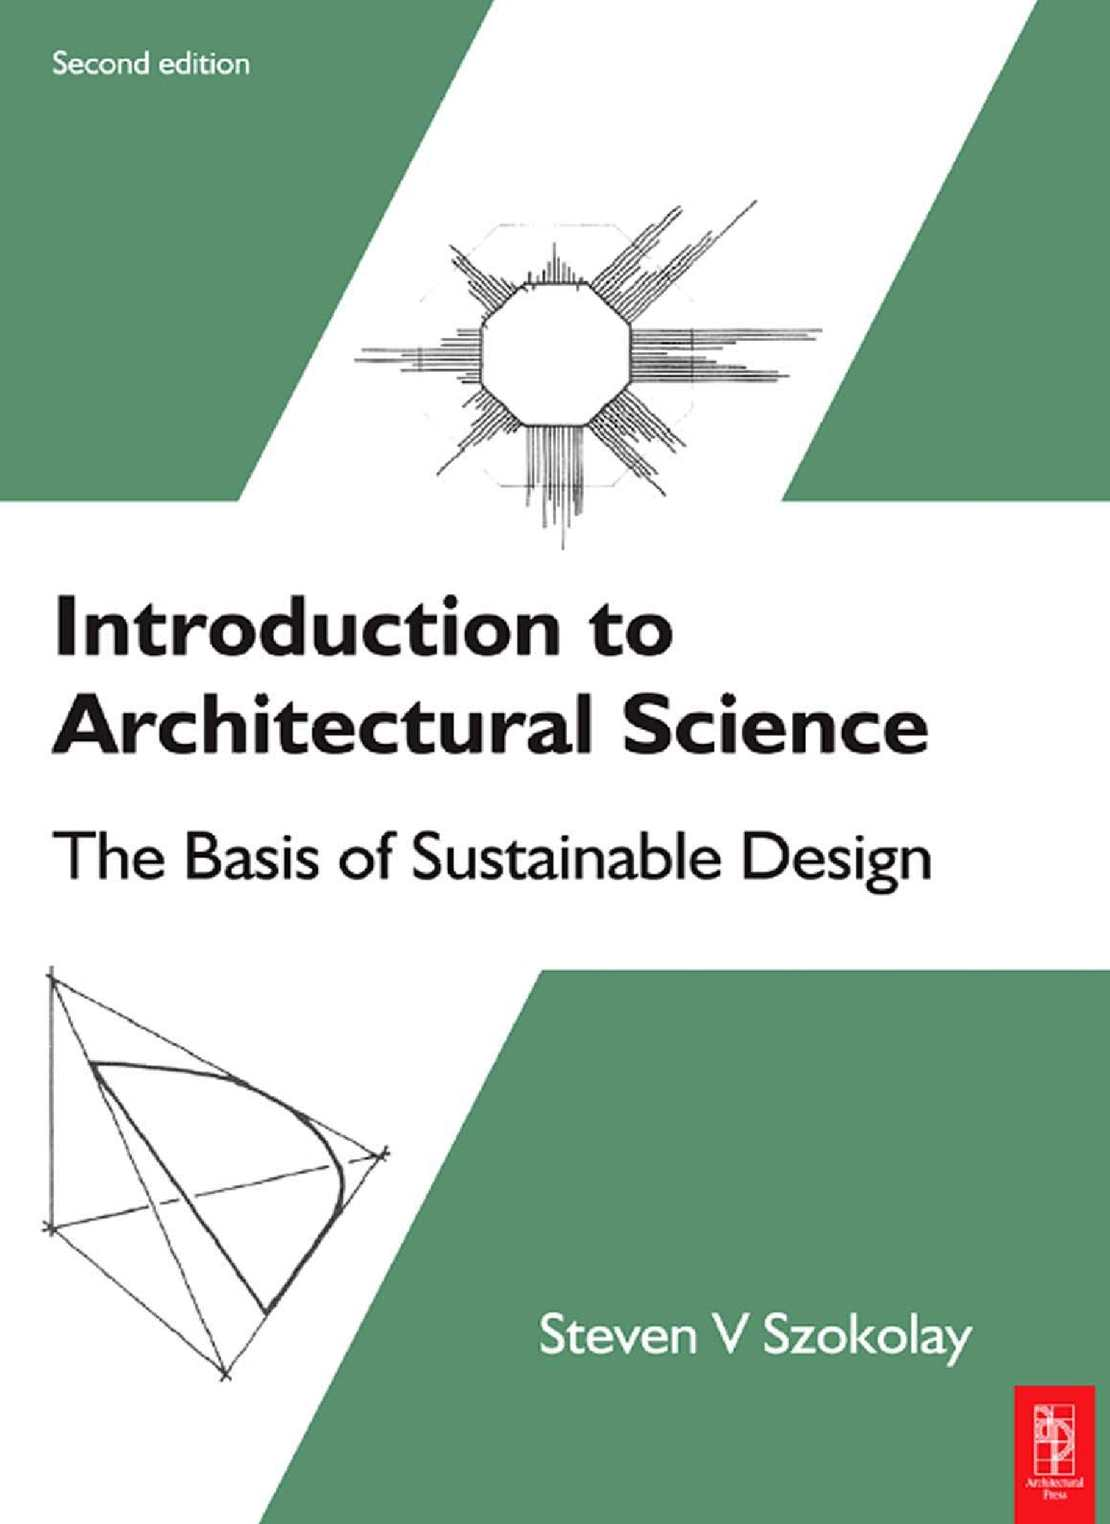 Introduction to ARCHITECTURAL SCIENCE The Basis of Sustainable Design